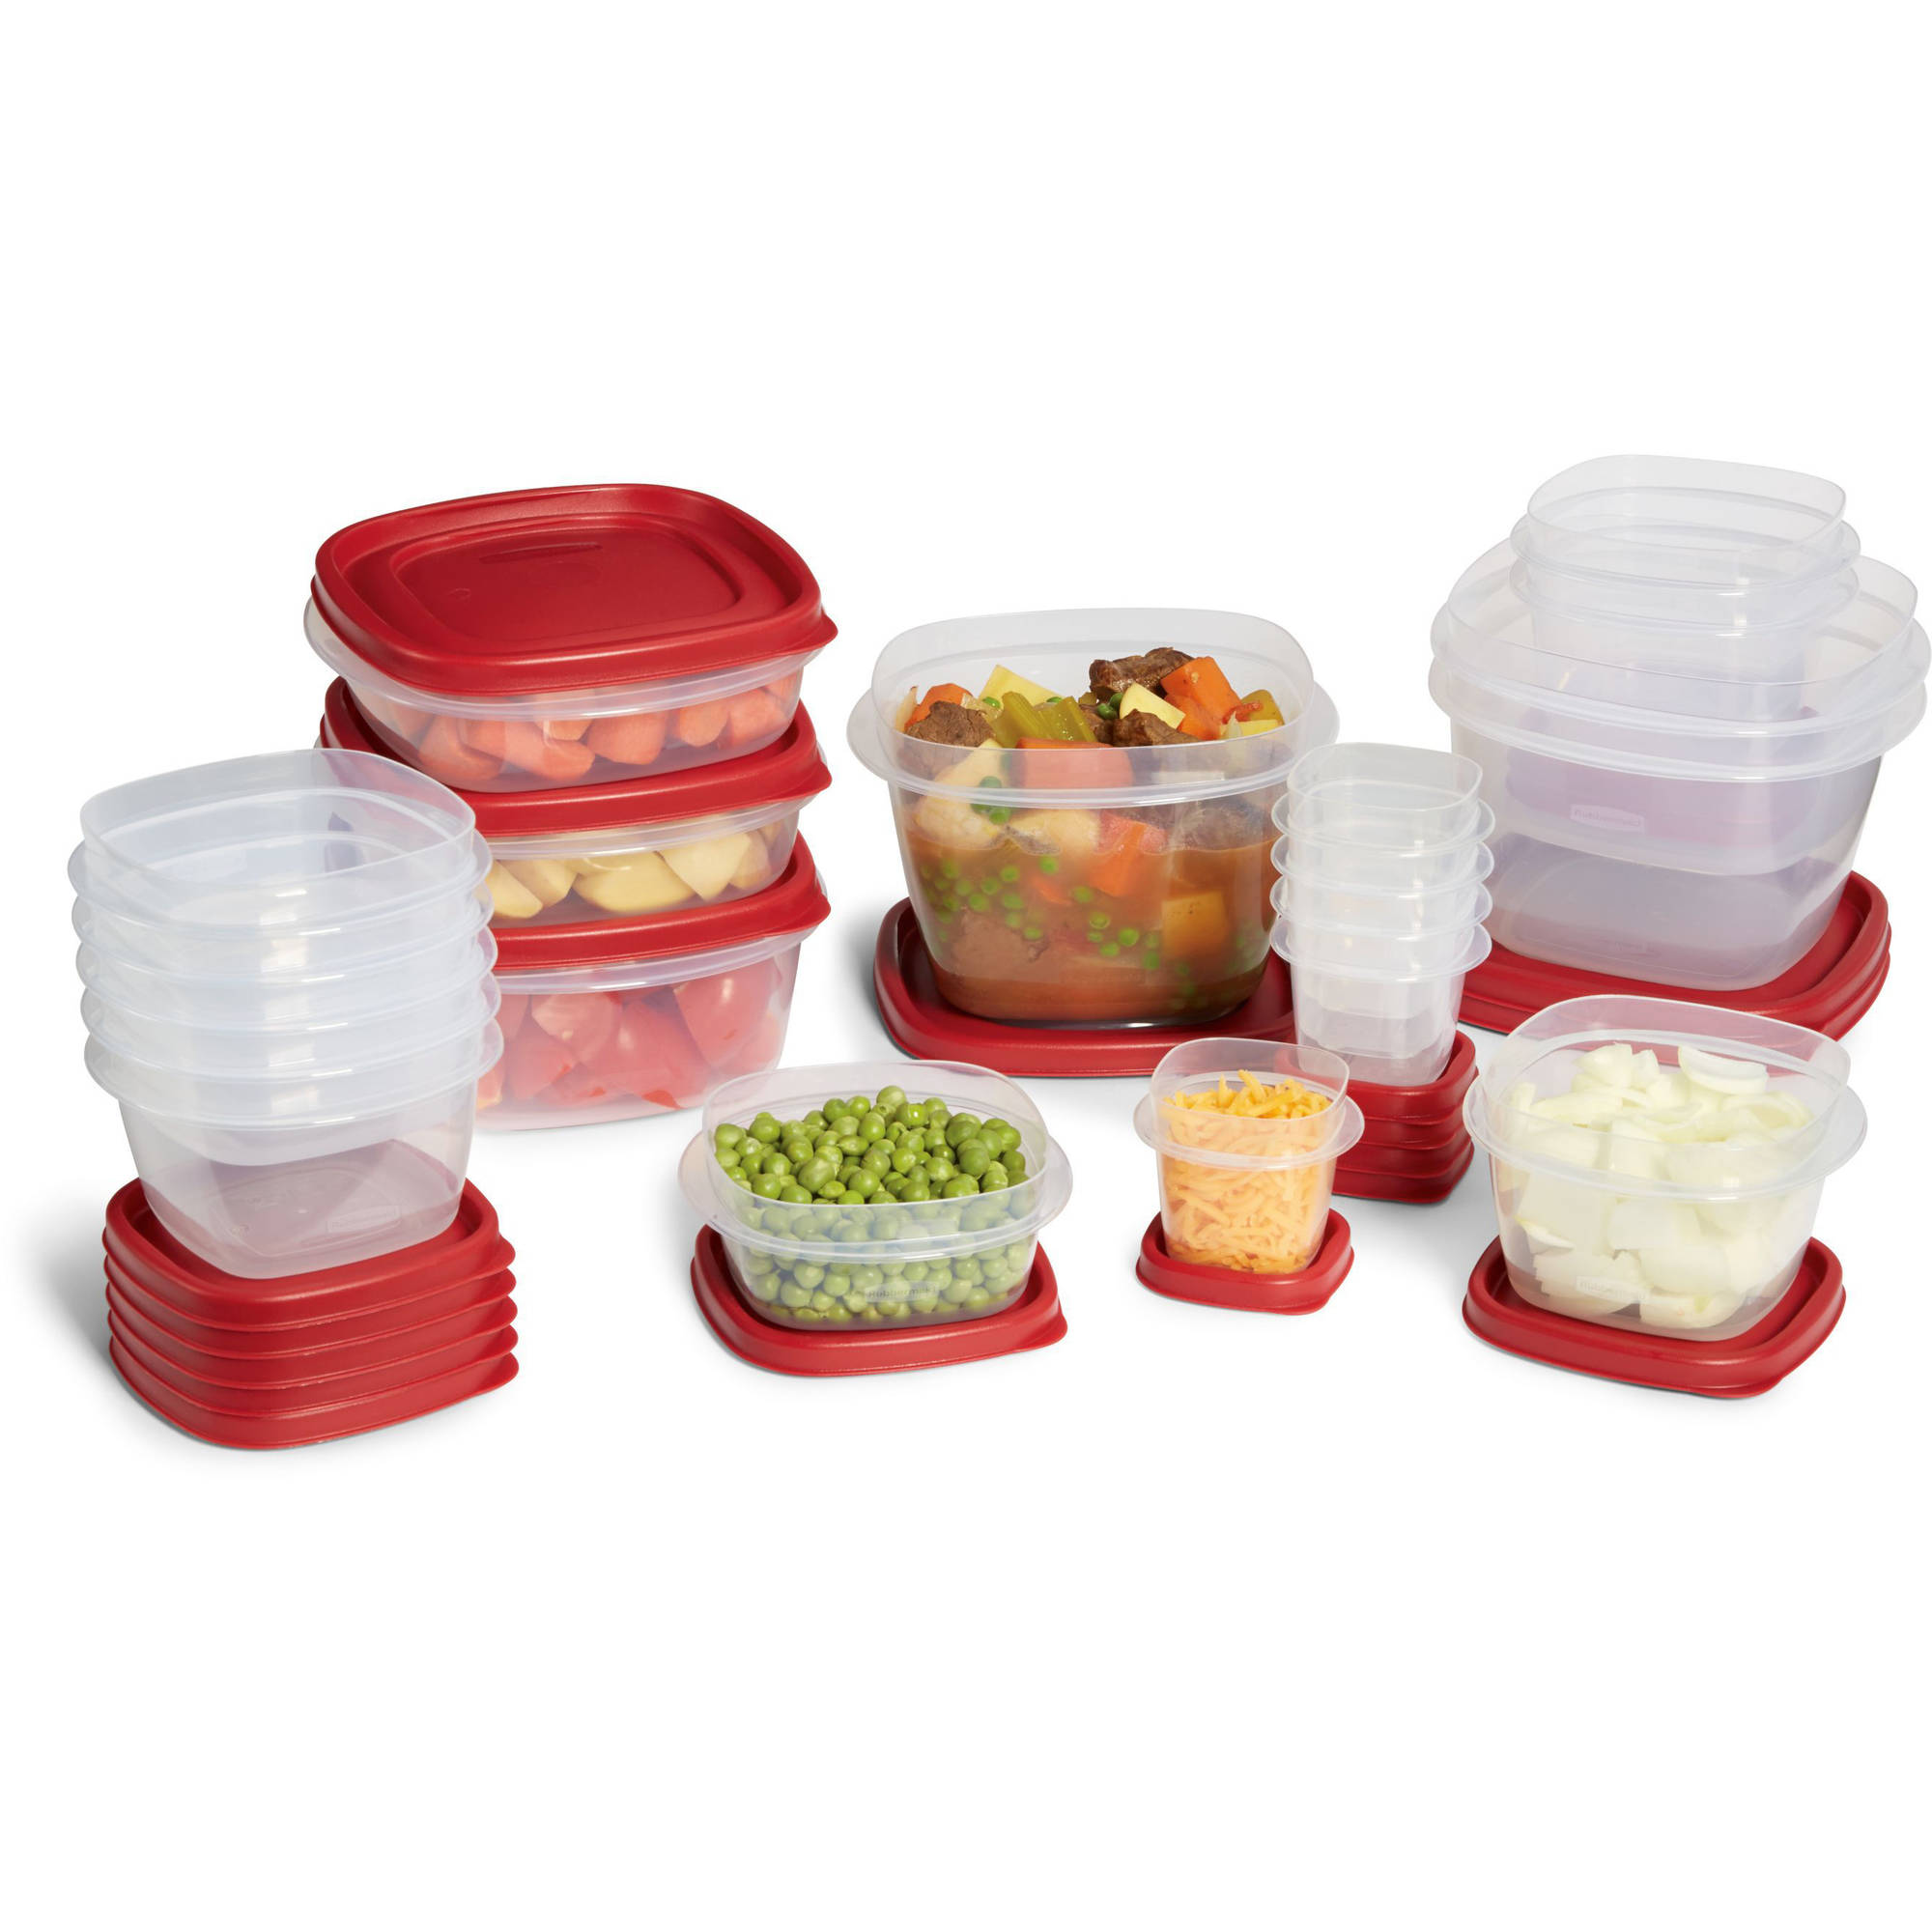 Rubbermaid Food Storage Containers with Easy Find Lids 40-Piece Set - Walmart.com  sc 1 st  Walmart & Rubbermaid Food Storage Containers with Easy Find Lids 40-Piece Set ...